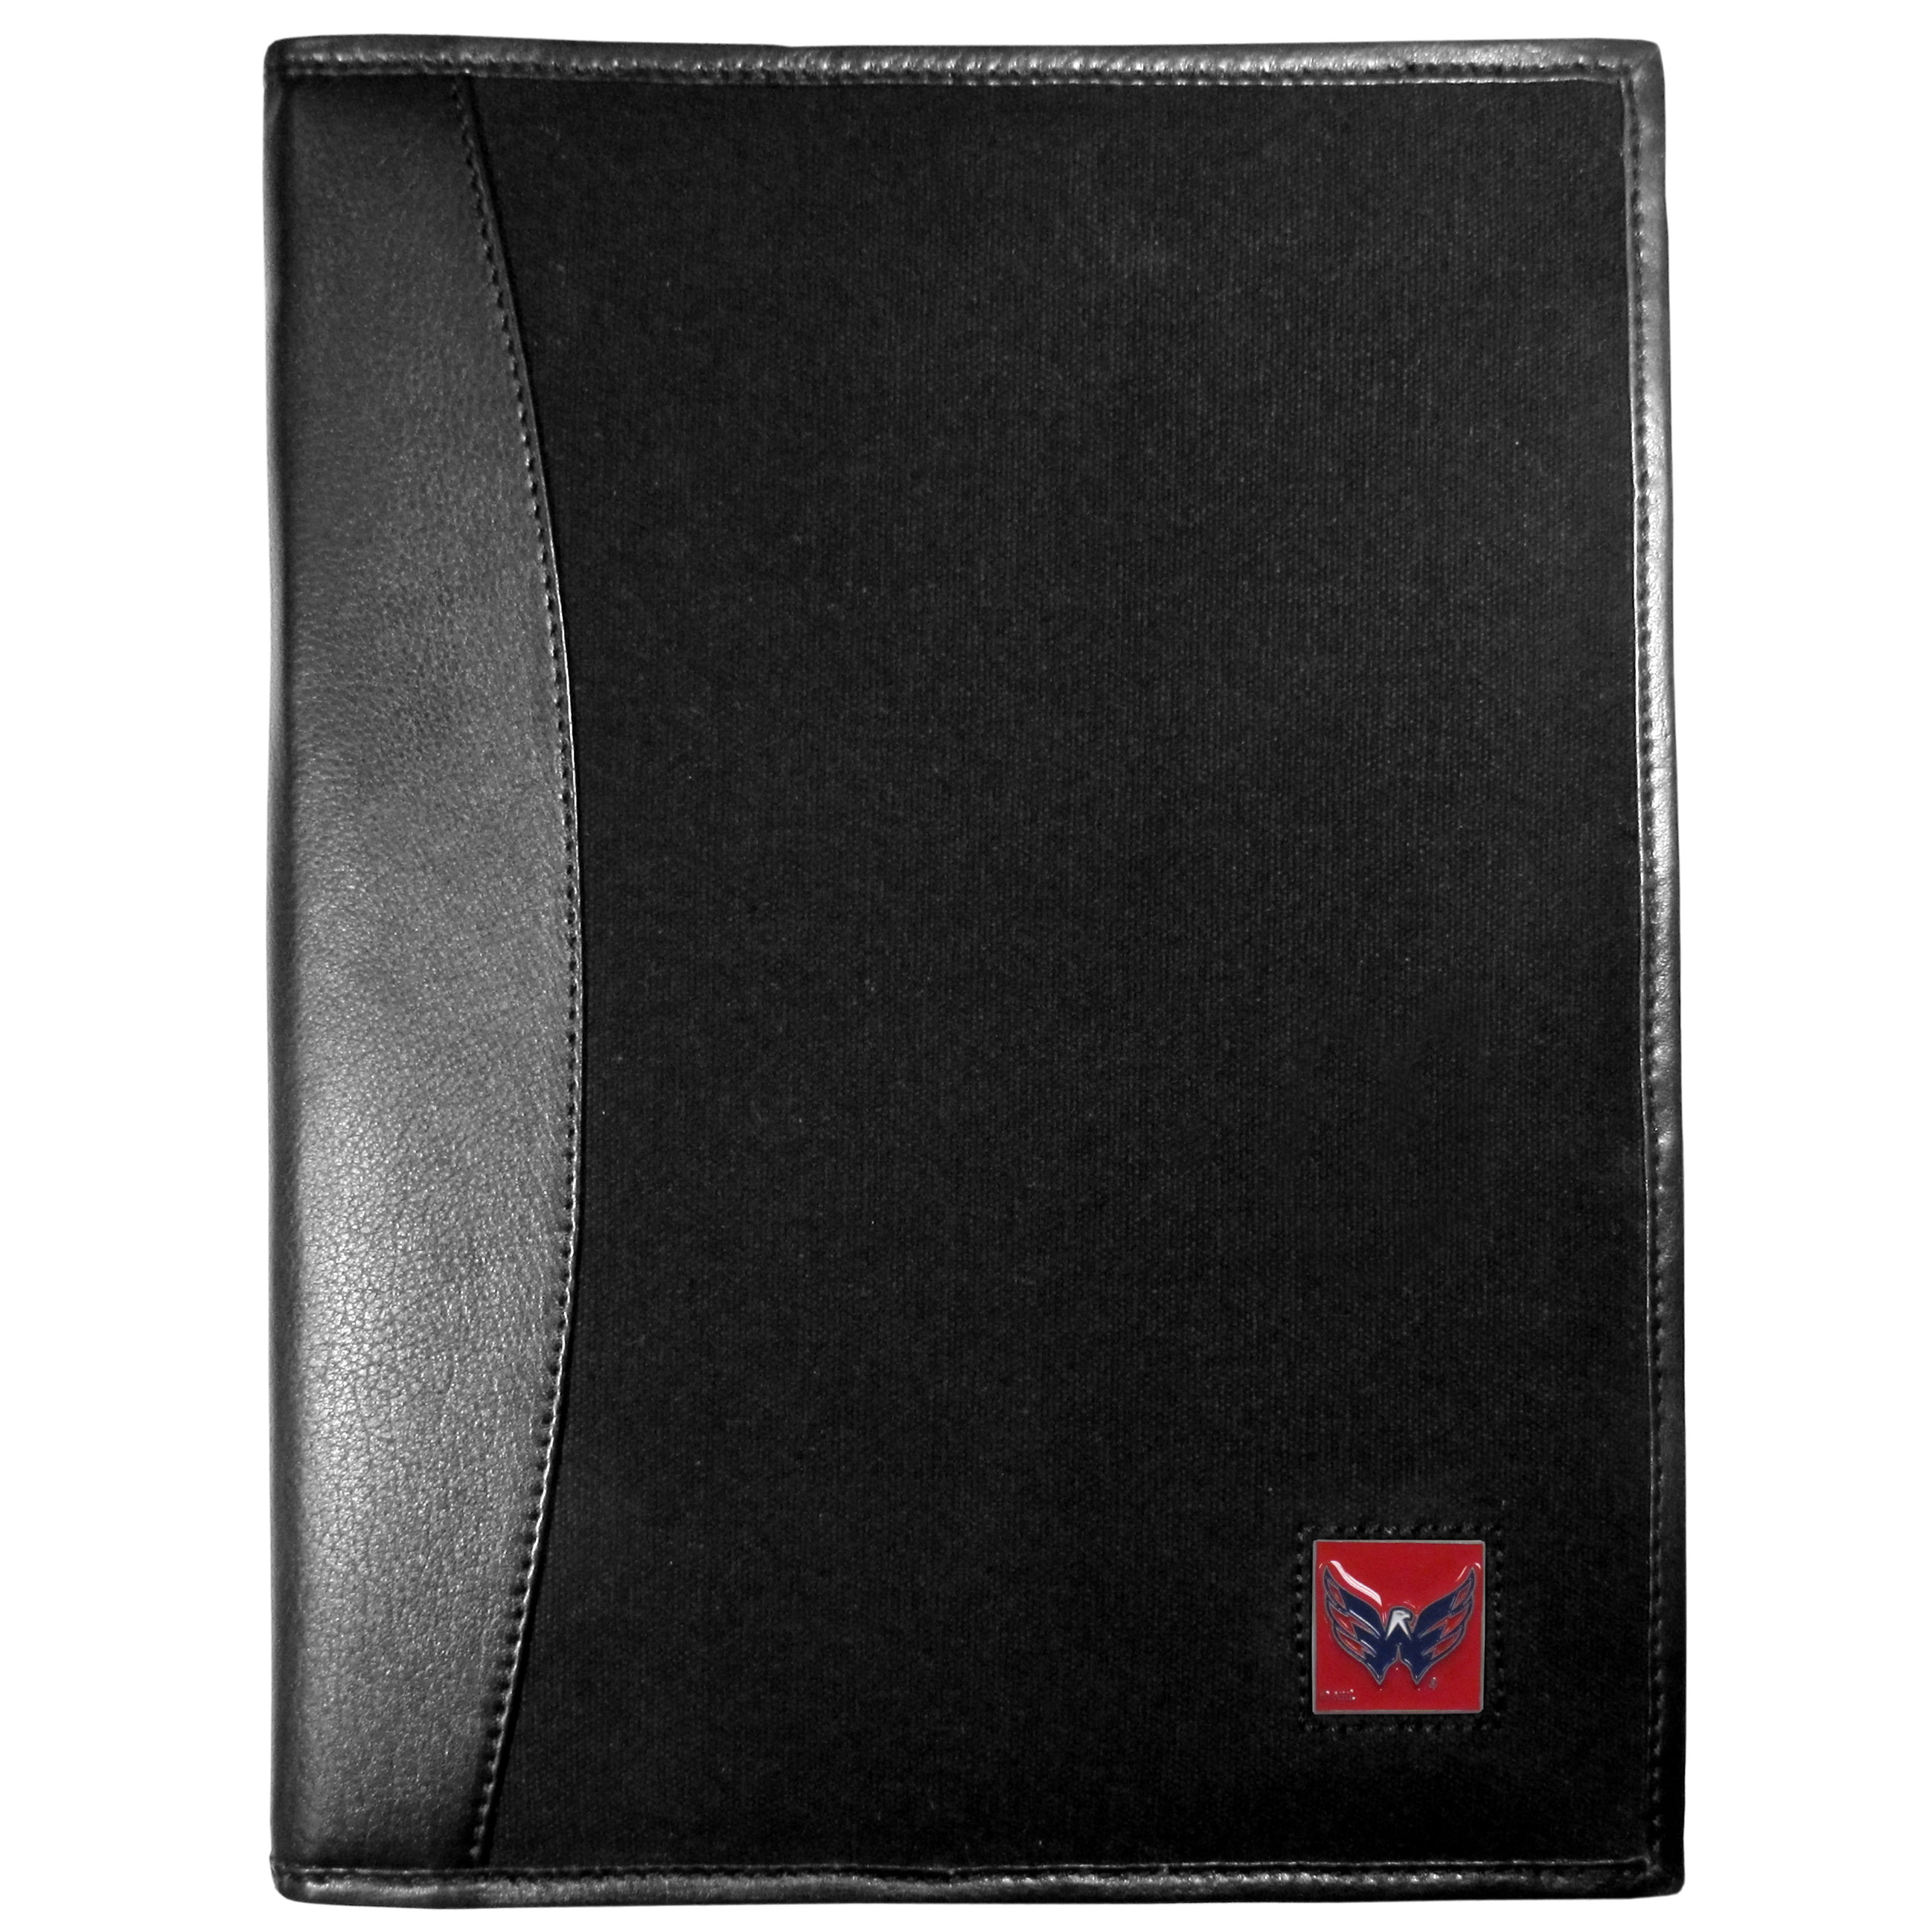 Washington Capitals® Leather and Canvas Padfolio - Our leather and canvas padfolio perfectly blends form and function. The attractive portfolio is bound in fine grain leather with an attractive canvas finish and the interior is a soft nylon. This high quality business accessory also features a fully cast metal Washington Capitals® emblem that is subtly set in the corner of the organizer. It is packed with features like 6 card slots for badges, business cards, hotel keys or credit cards and ID with a large pocket for loose papers and a writing tablet slot making it a must-have for the professional on the go.